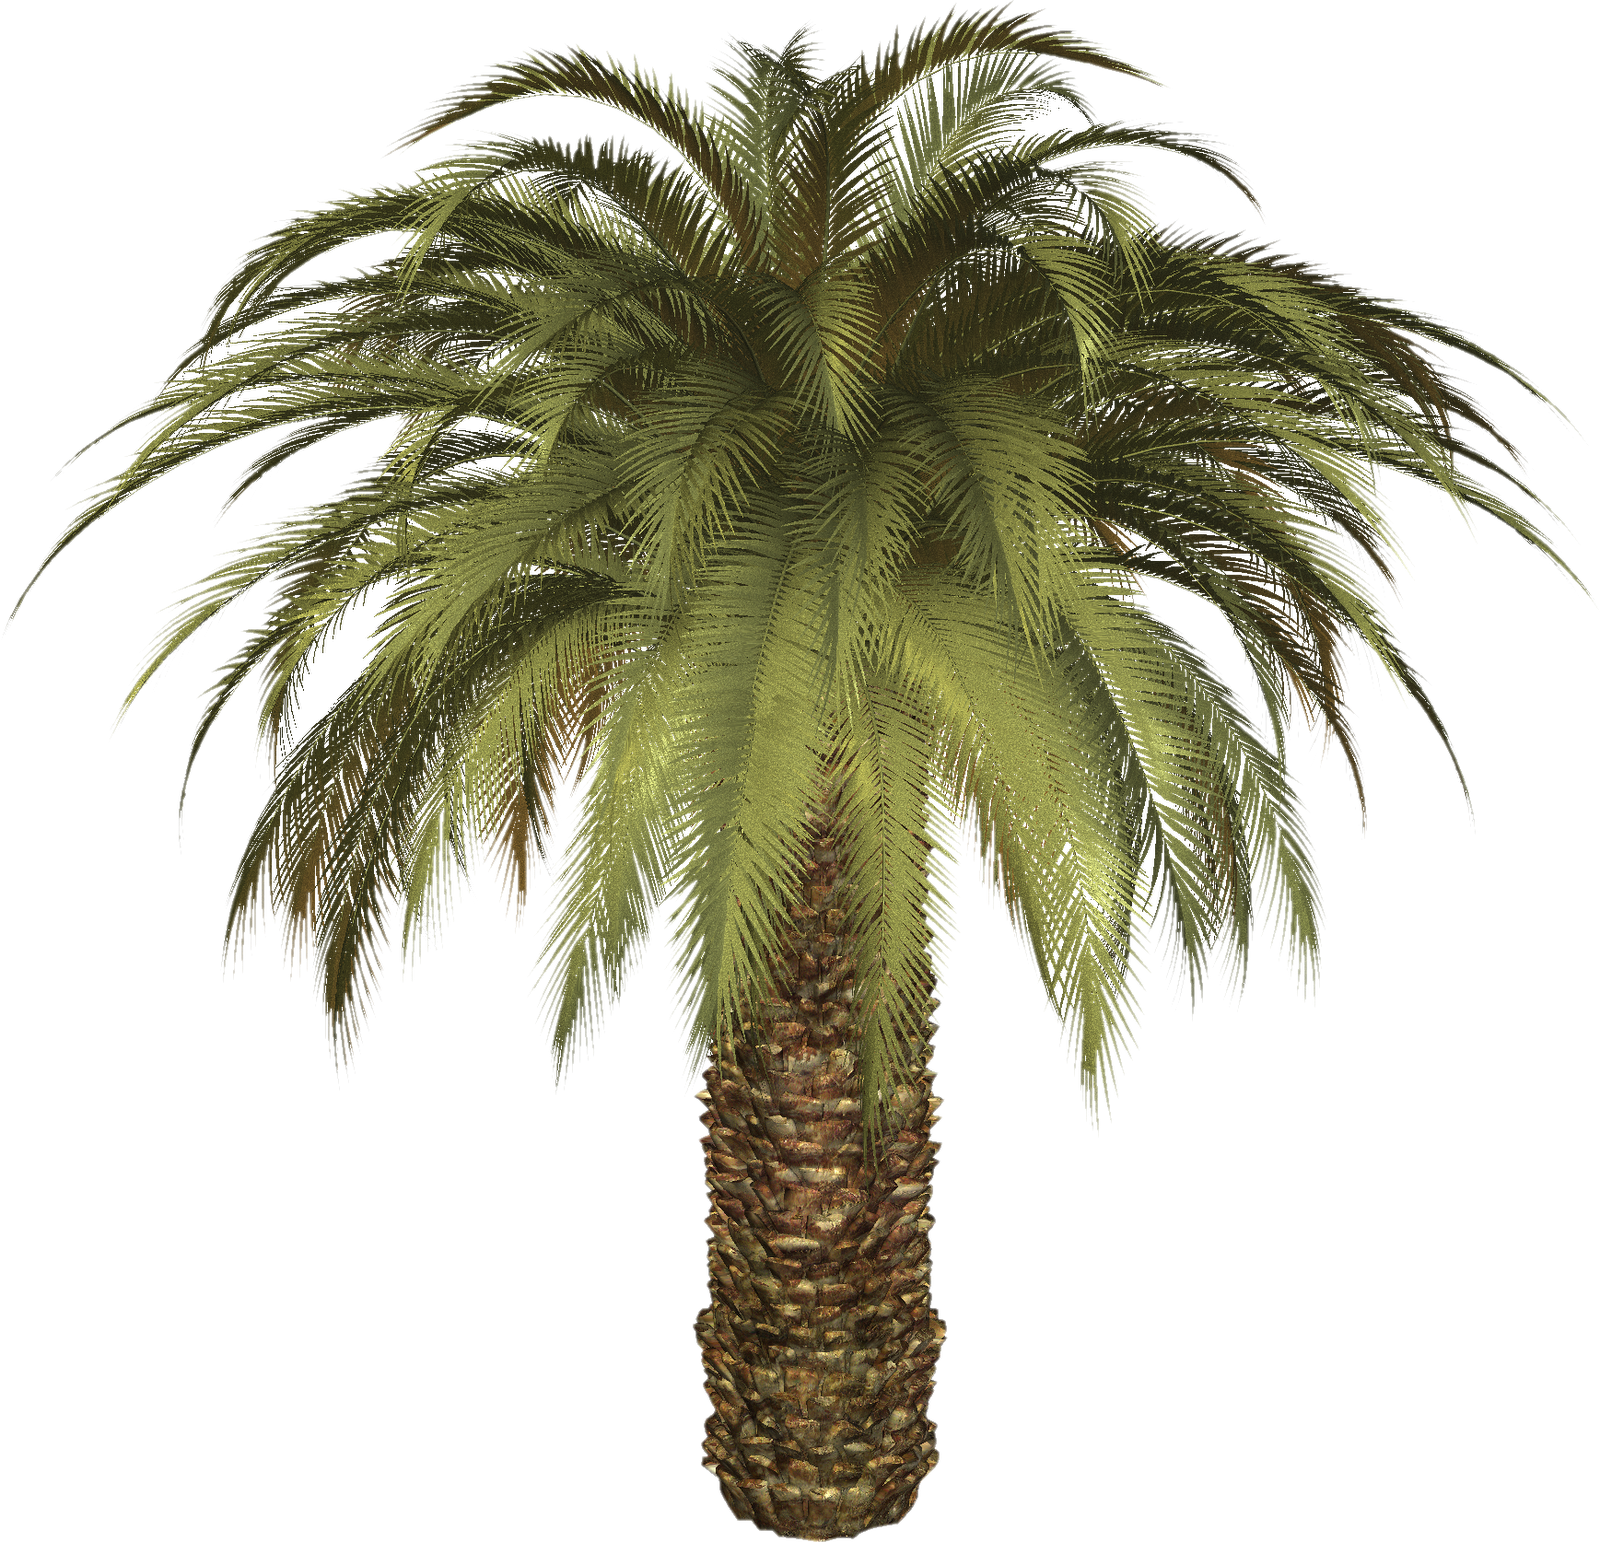 Palm Tree Image Png image #43058